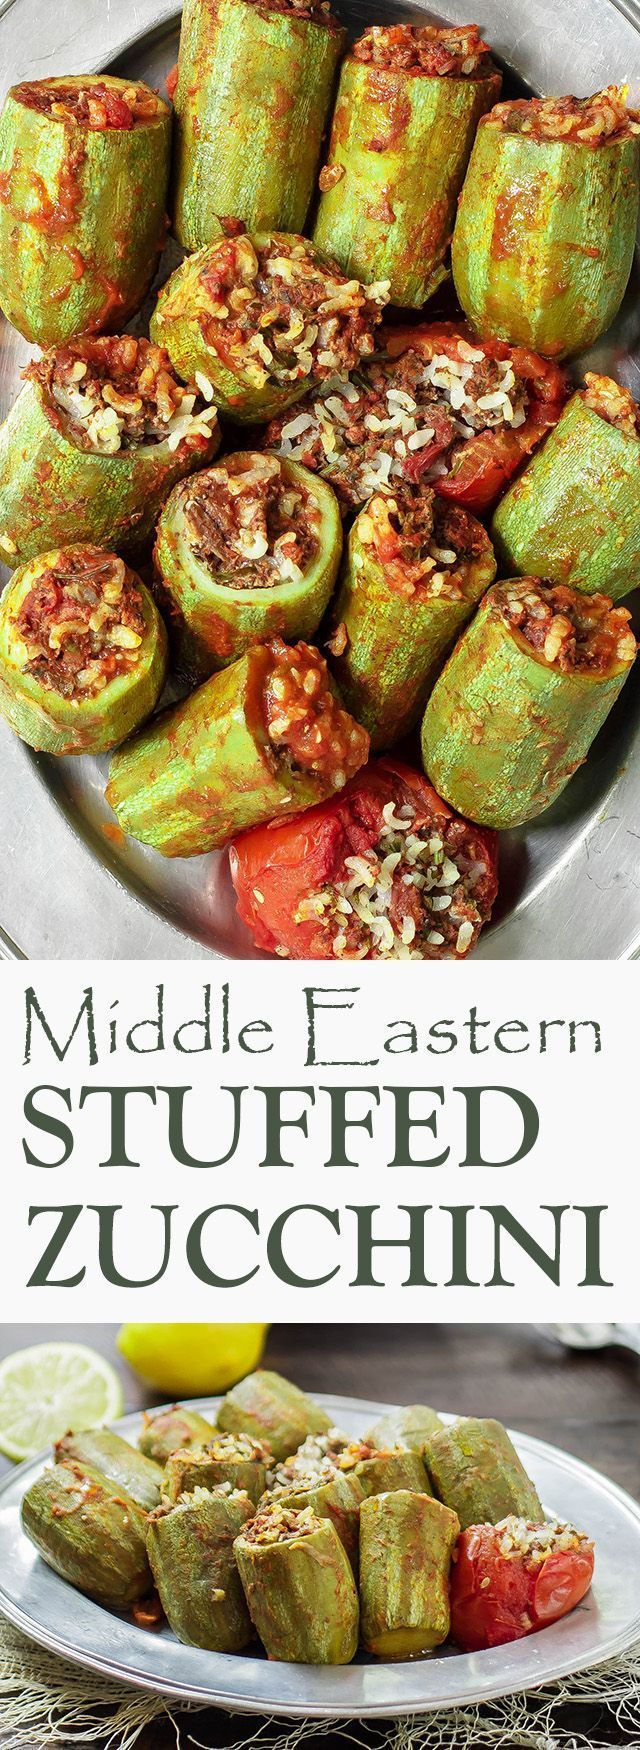 Stuffed Zucchini The Mediterranean Dish An All Star Stuffed Zucchini Recipe With A Special Middle Eastern Style Fi Middle East Recipes Egyptian Food Recipes